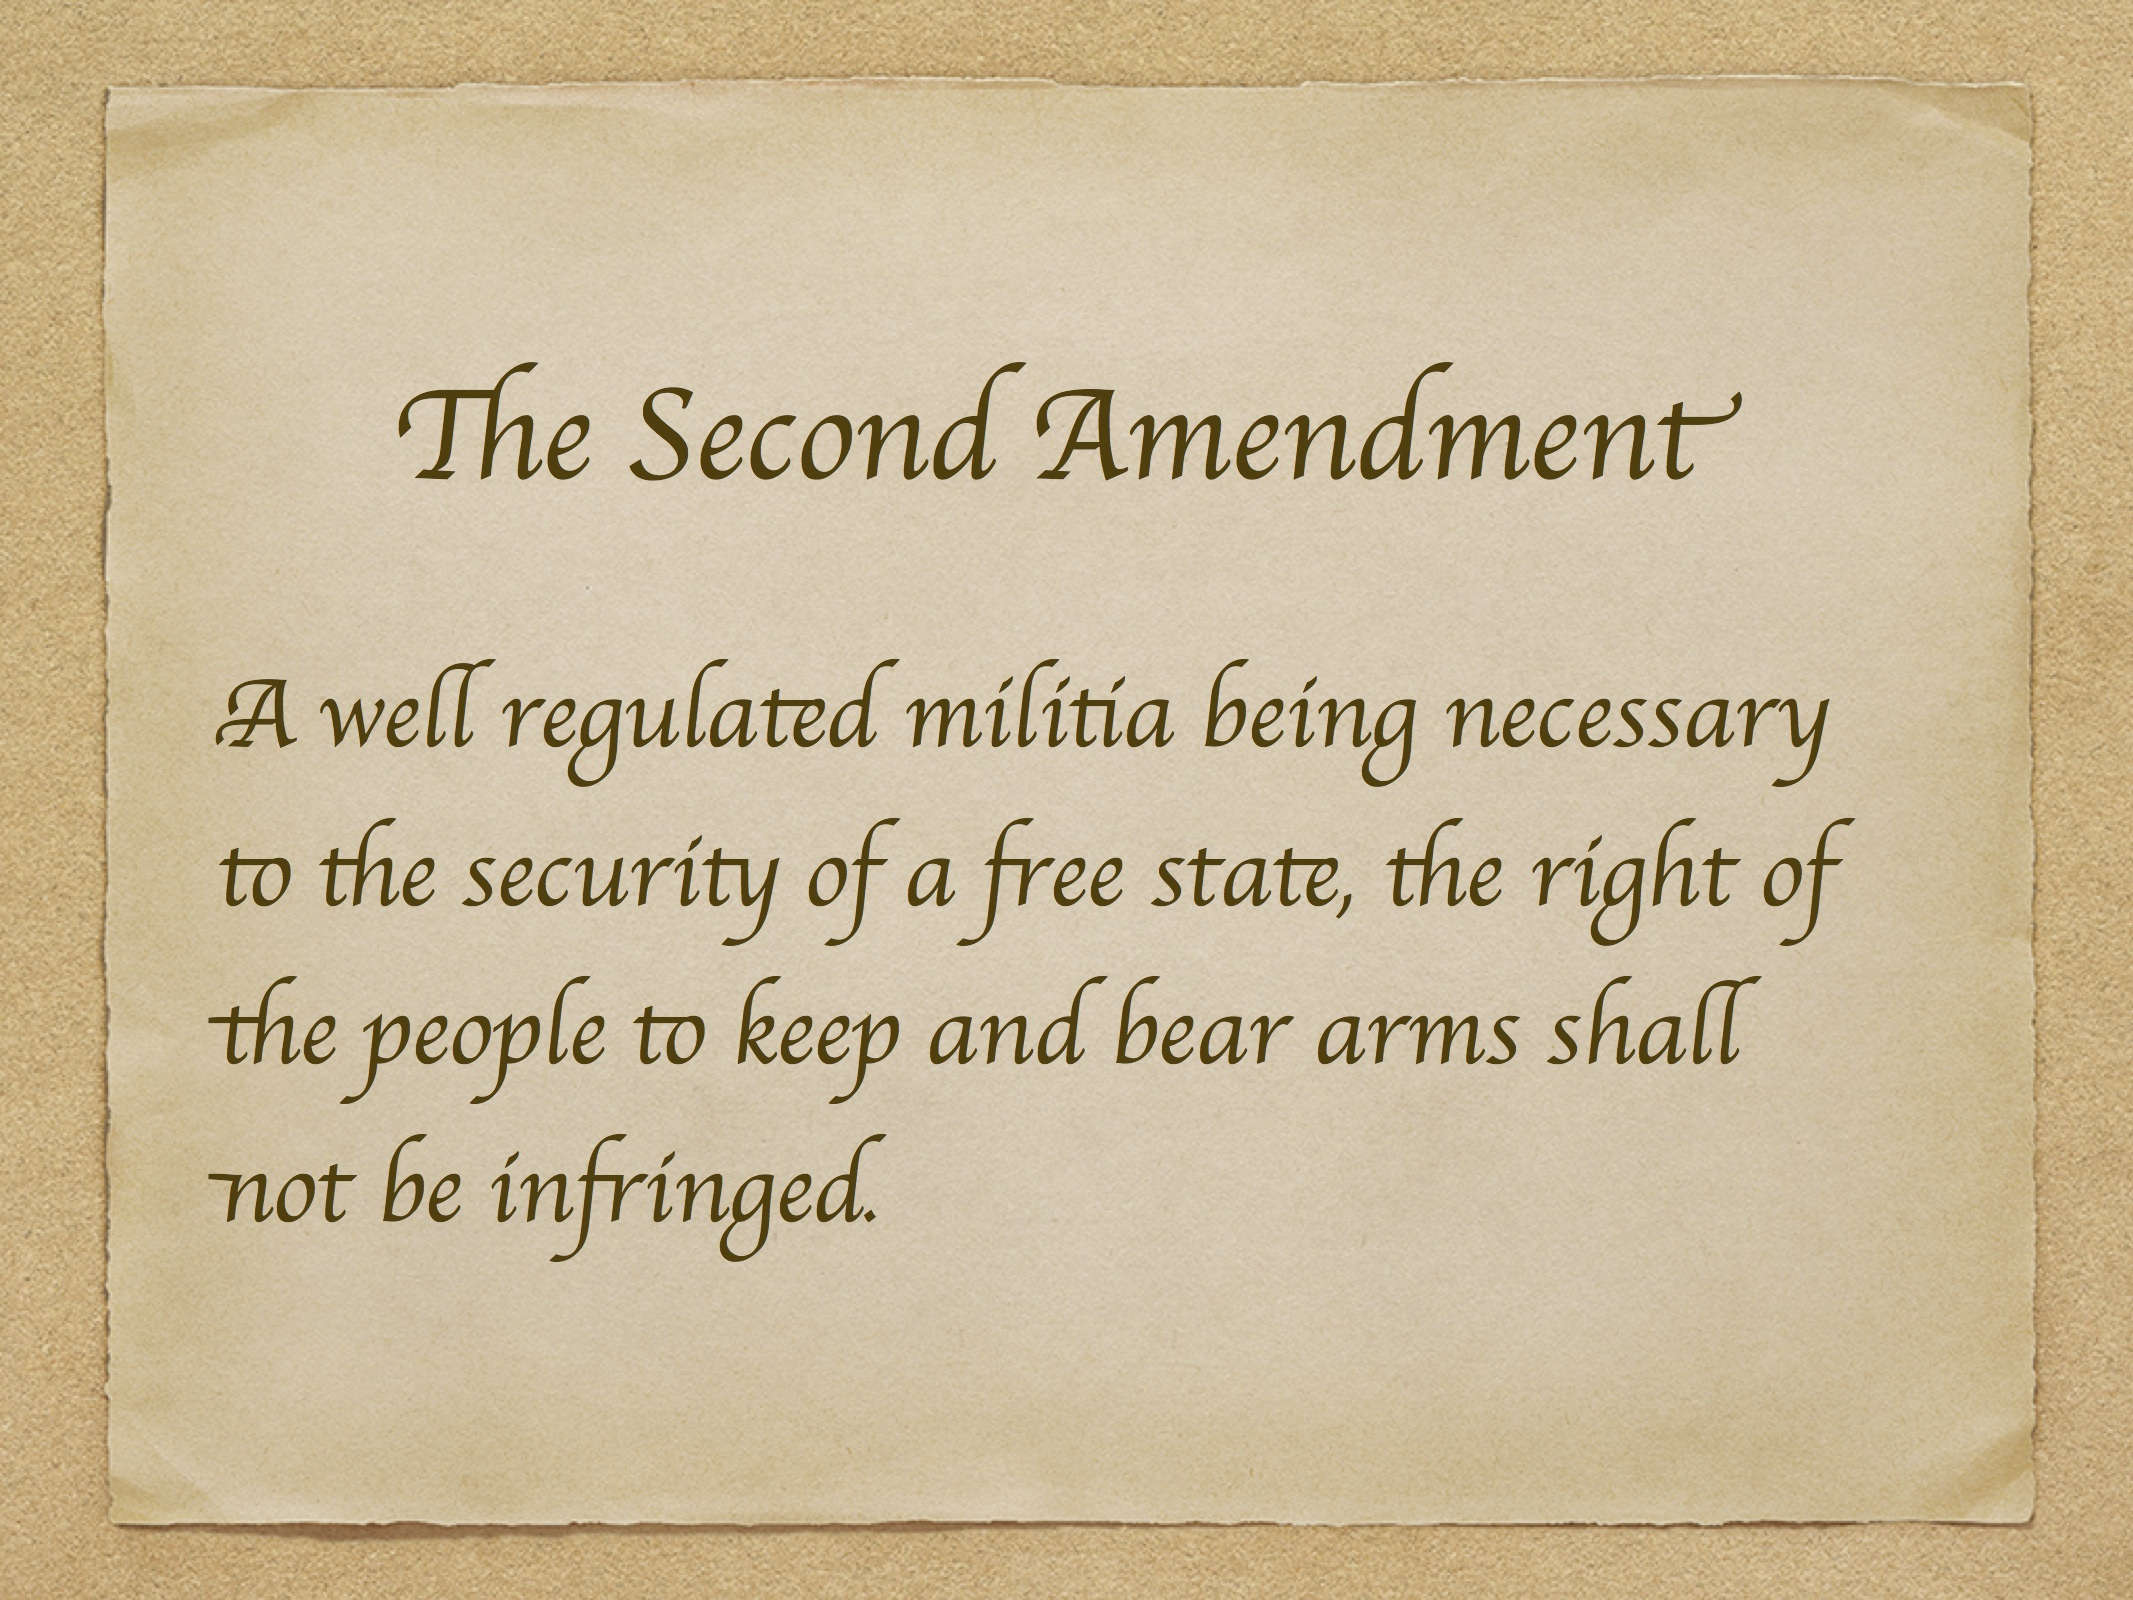 amendment 2 right to bear arms  the right of the people to keep and bear arms shall not be infringed quot in other words in order to keep america protected citizens have a right